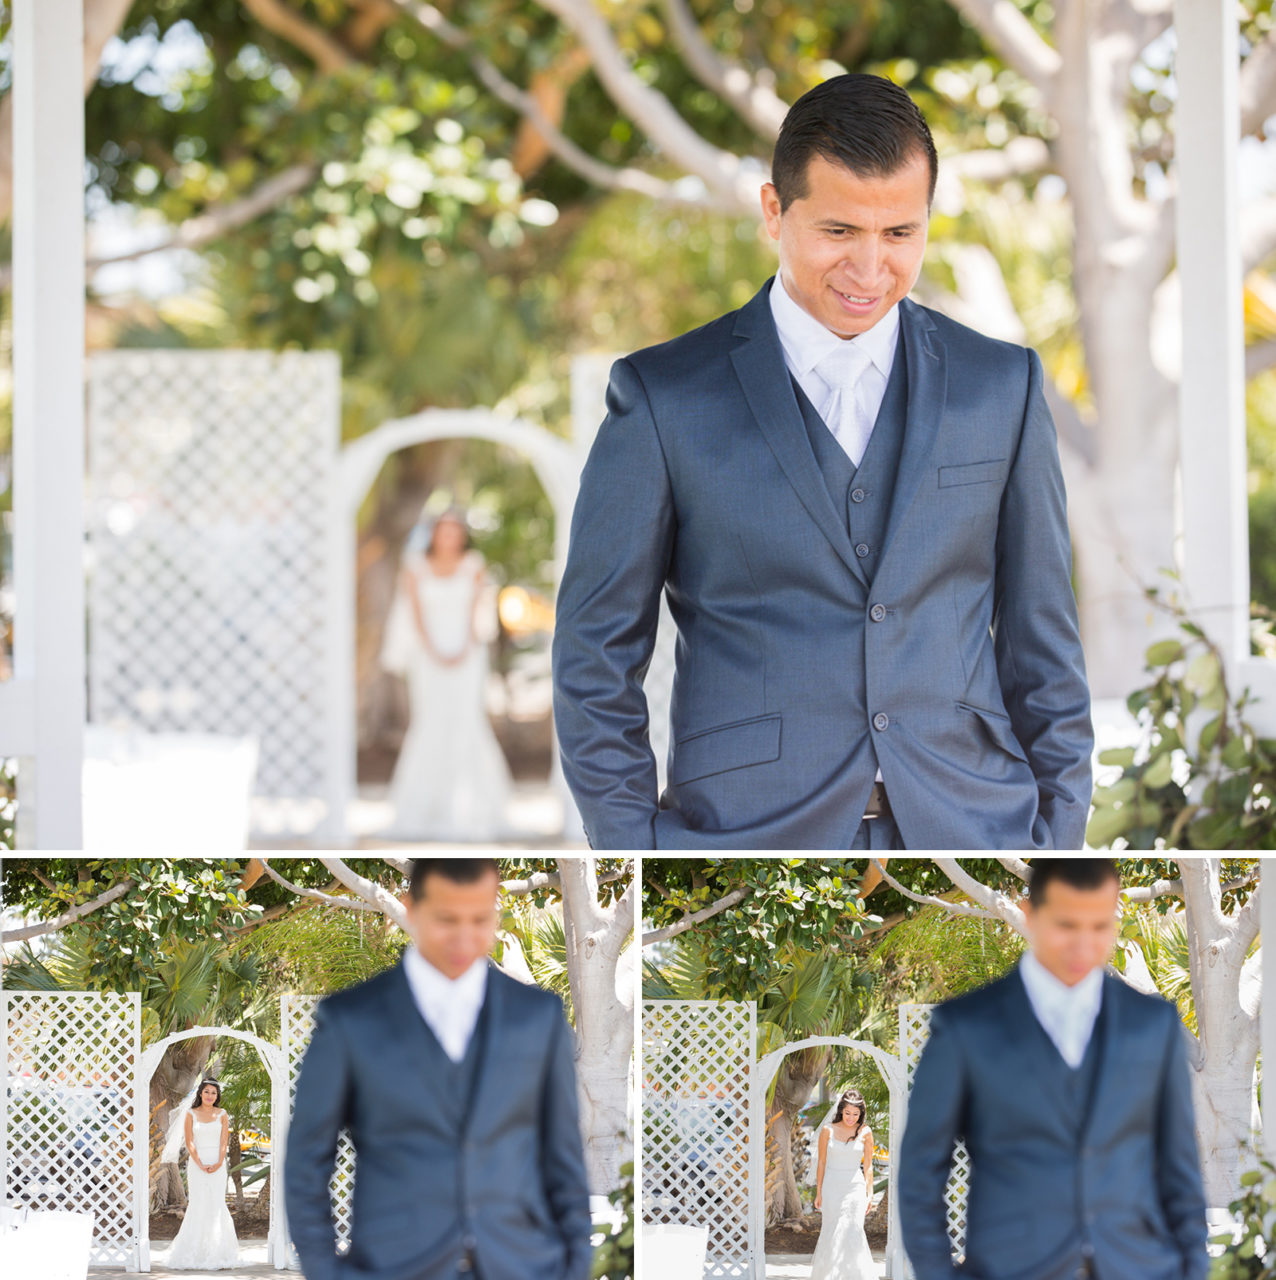 manny-pittsburgh-wedding-photographer-in-california-at-newport-beach-08